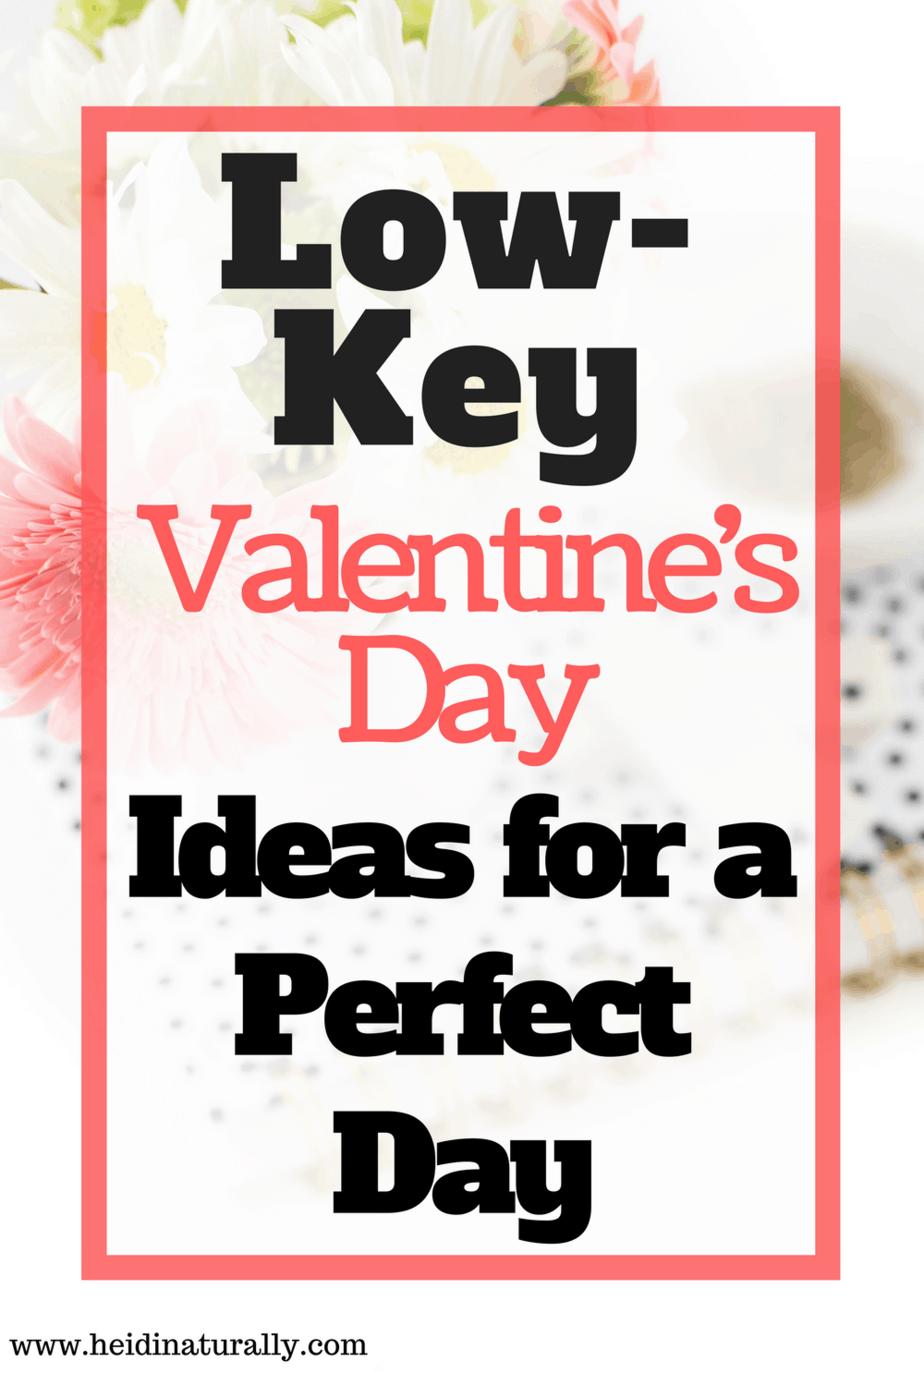 Simple hacks and thoughts to make your Valentine's day easy and low-key yet memorable and possibly the best day you will spend together.